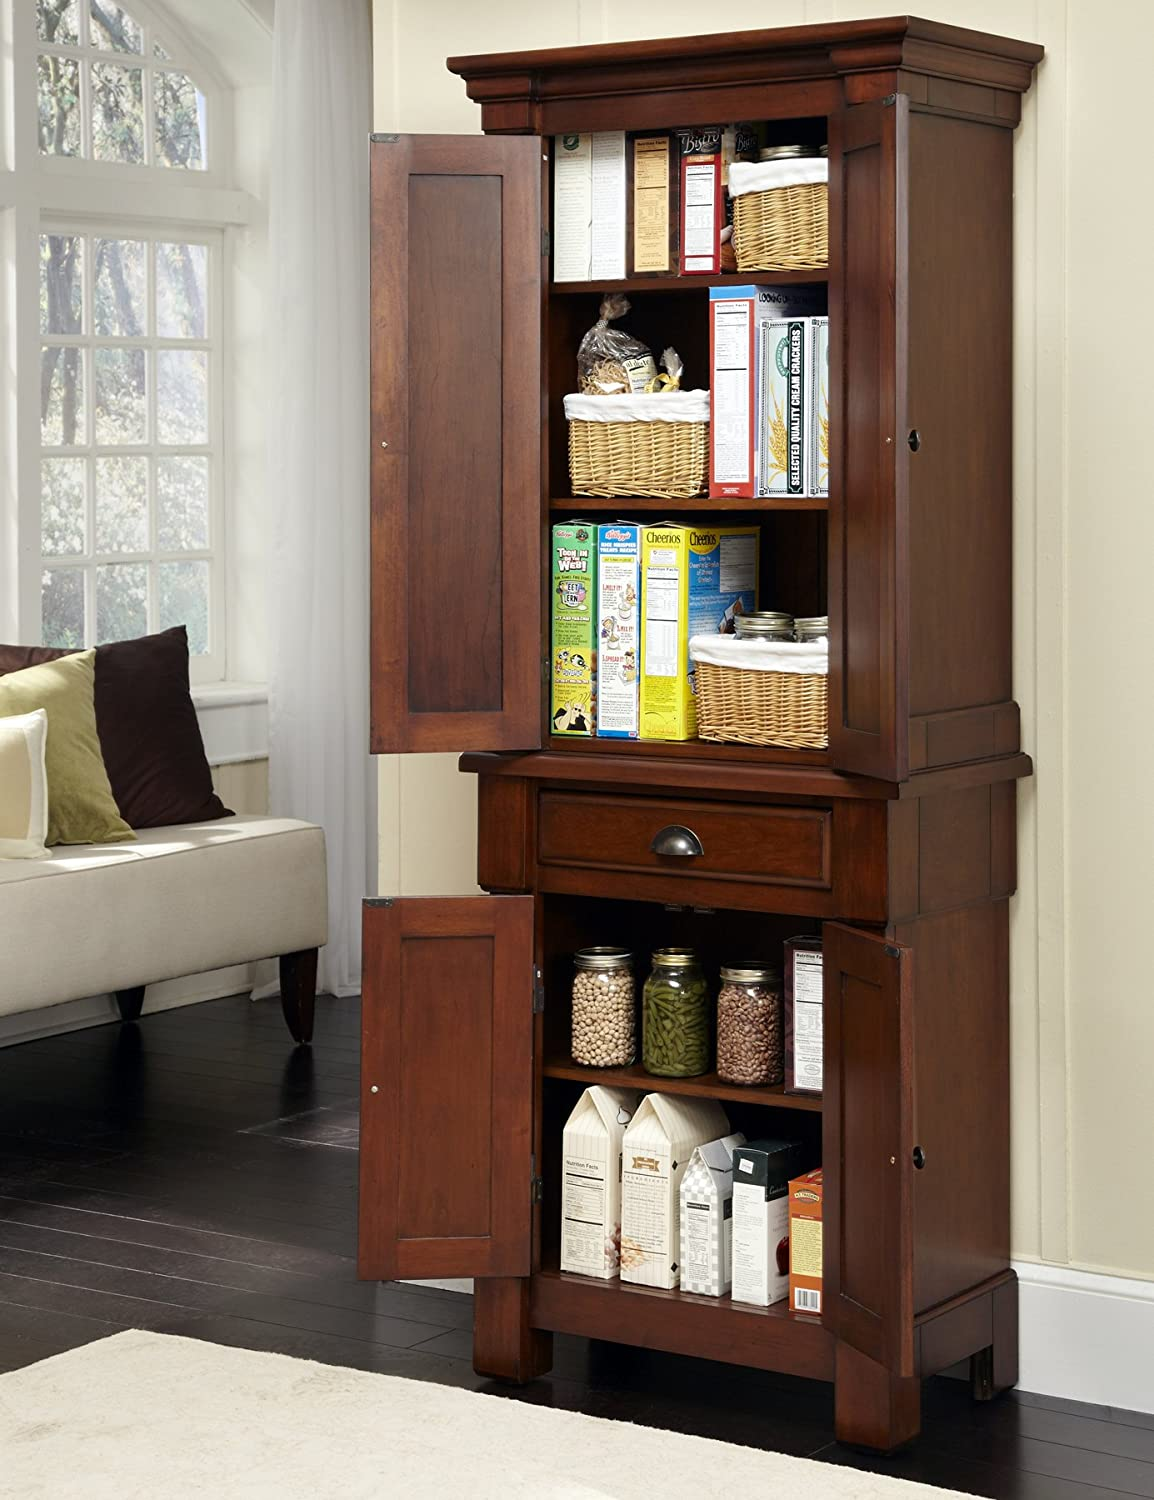 Pantry Cabinet Freestanding With Amazon.com: Home Styles The Aspen  Collection Pantry: Kitchen